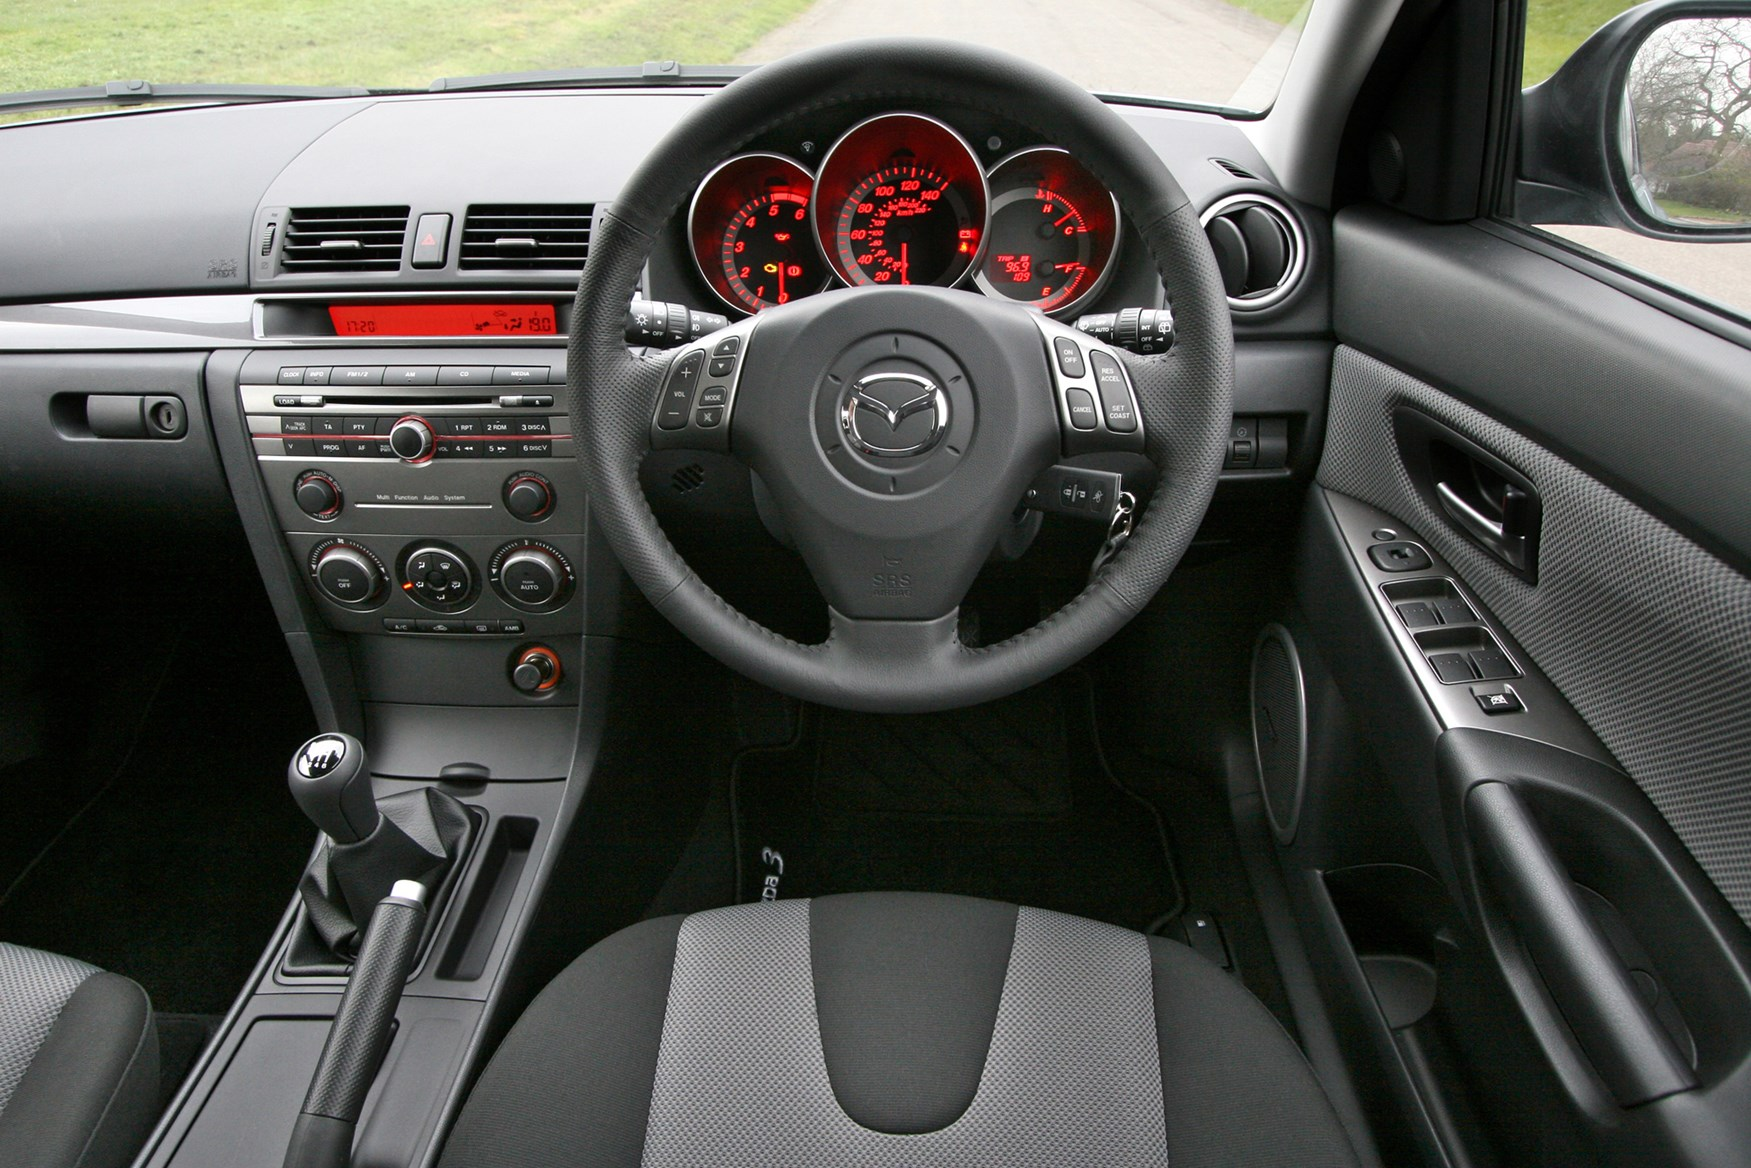 Superb View All Images Of The Mazda 3 Hatchback (04 08) Pictures